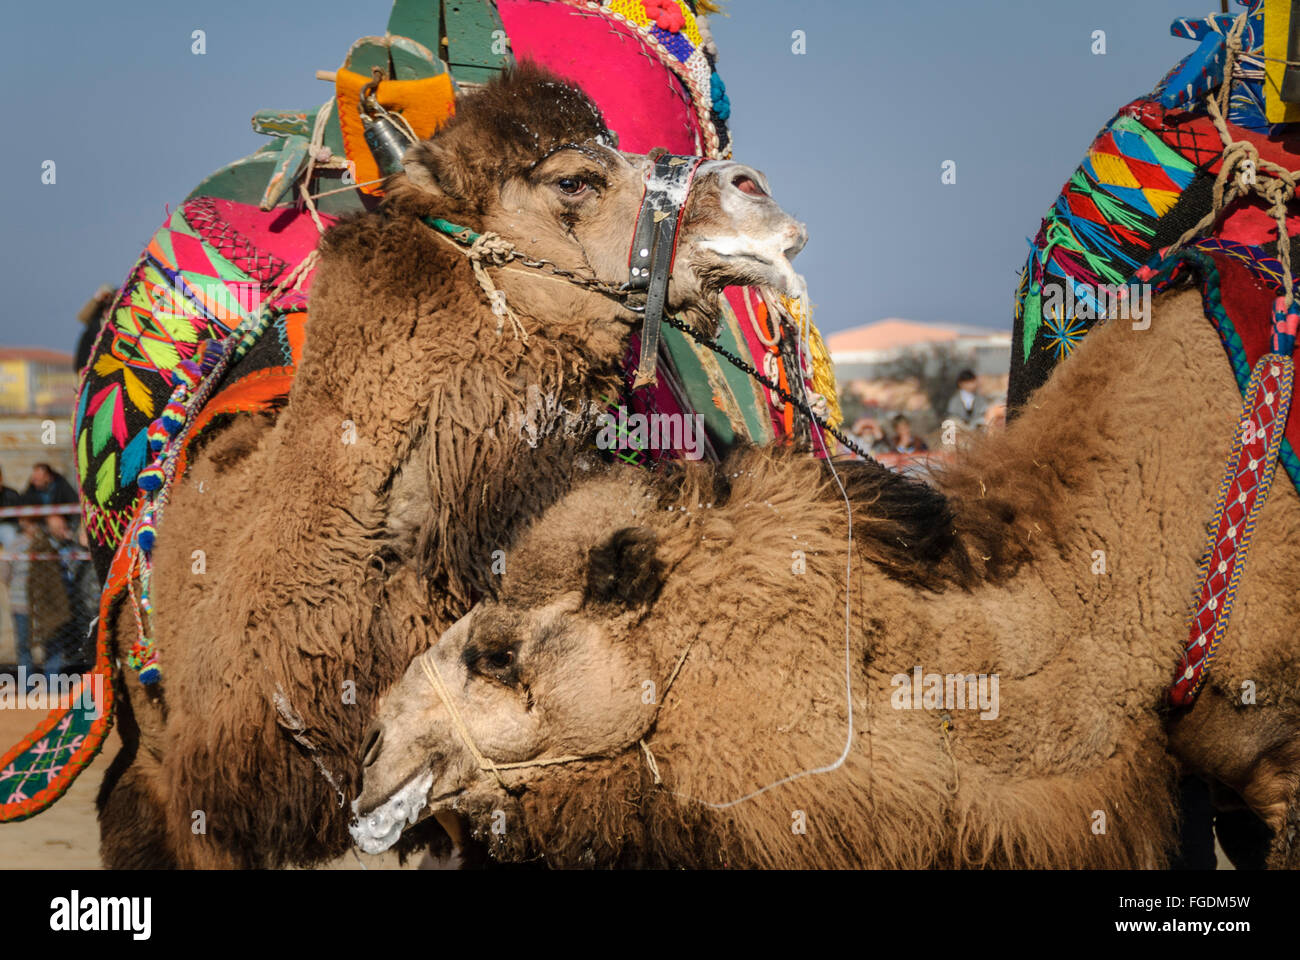 Two camels fighting during the Camel wrestling league in  Ayvalik. - Stock Image